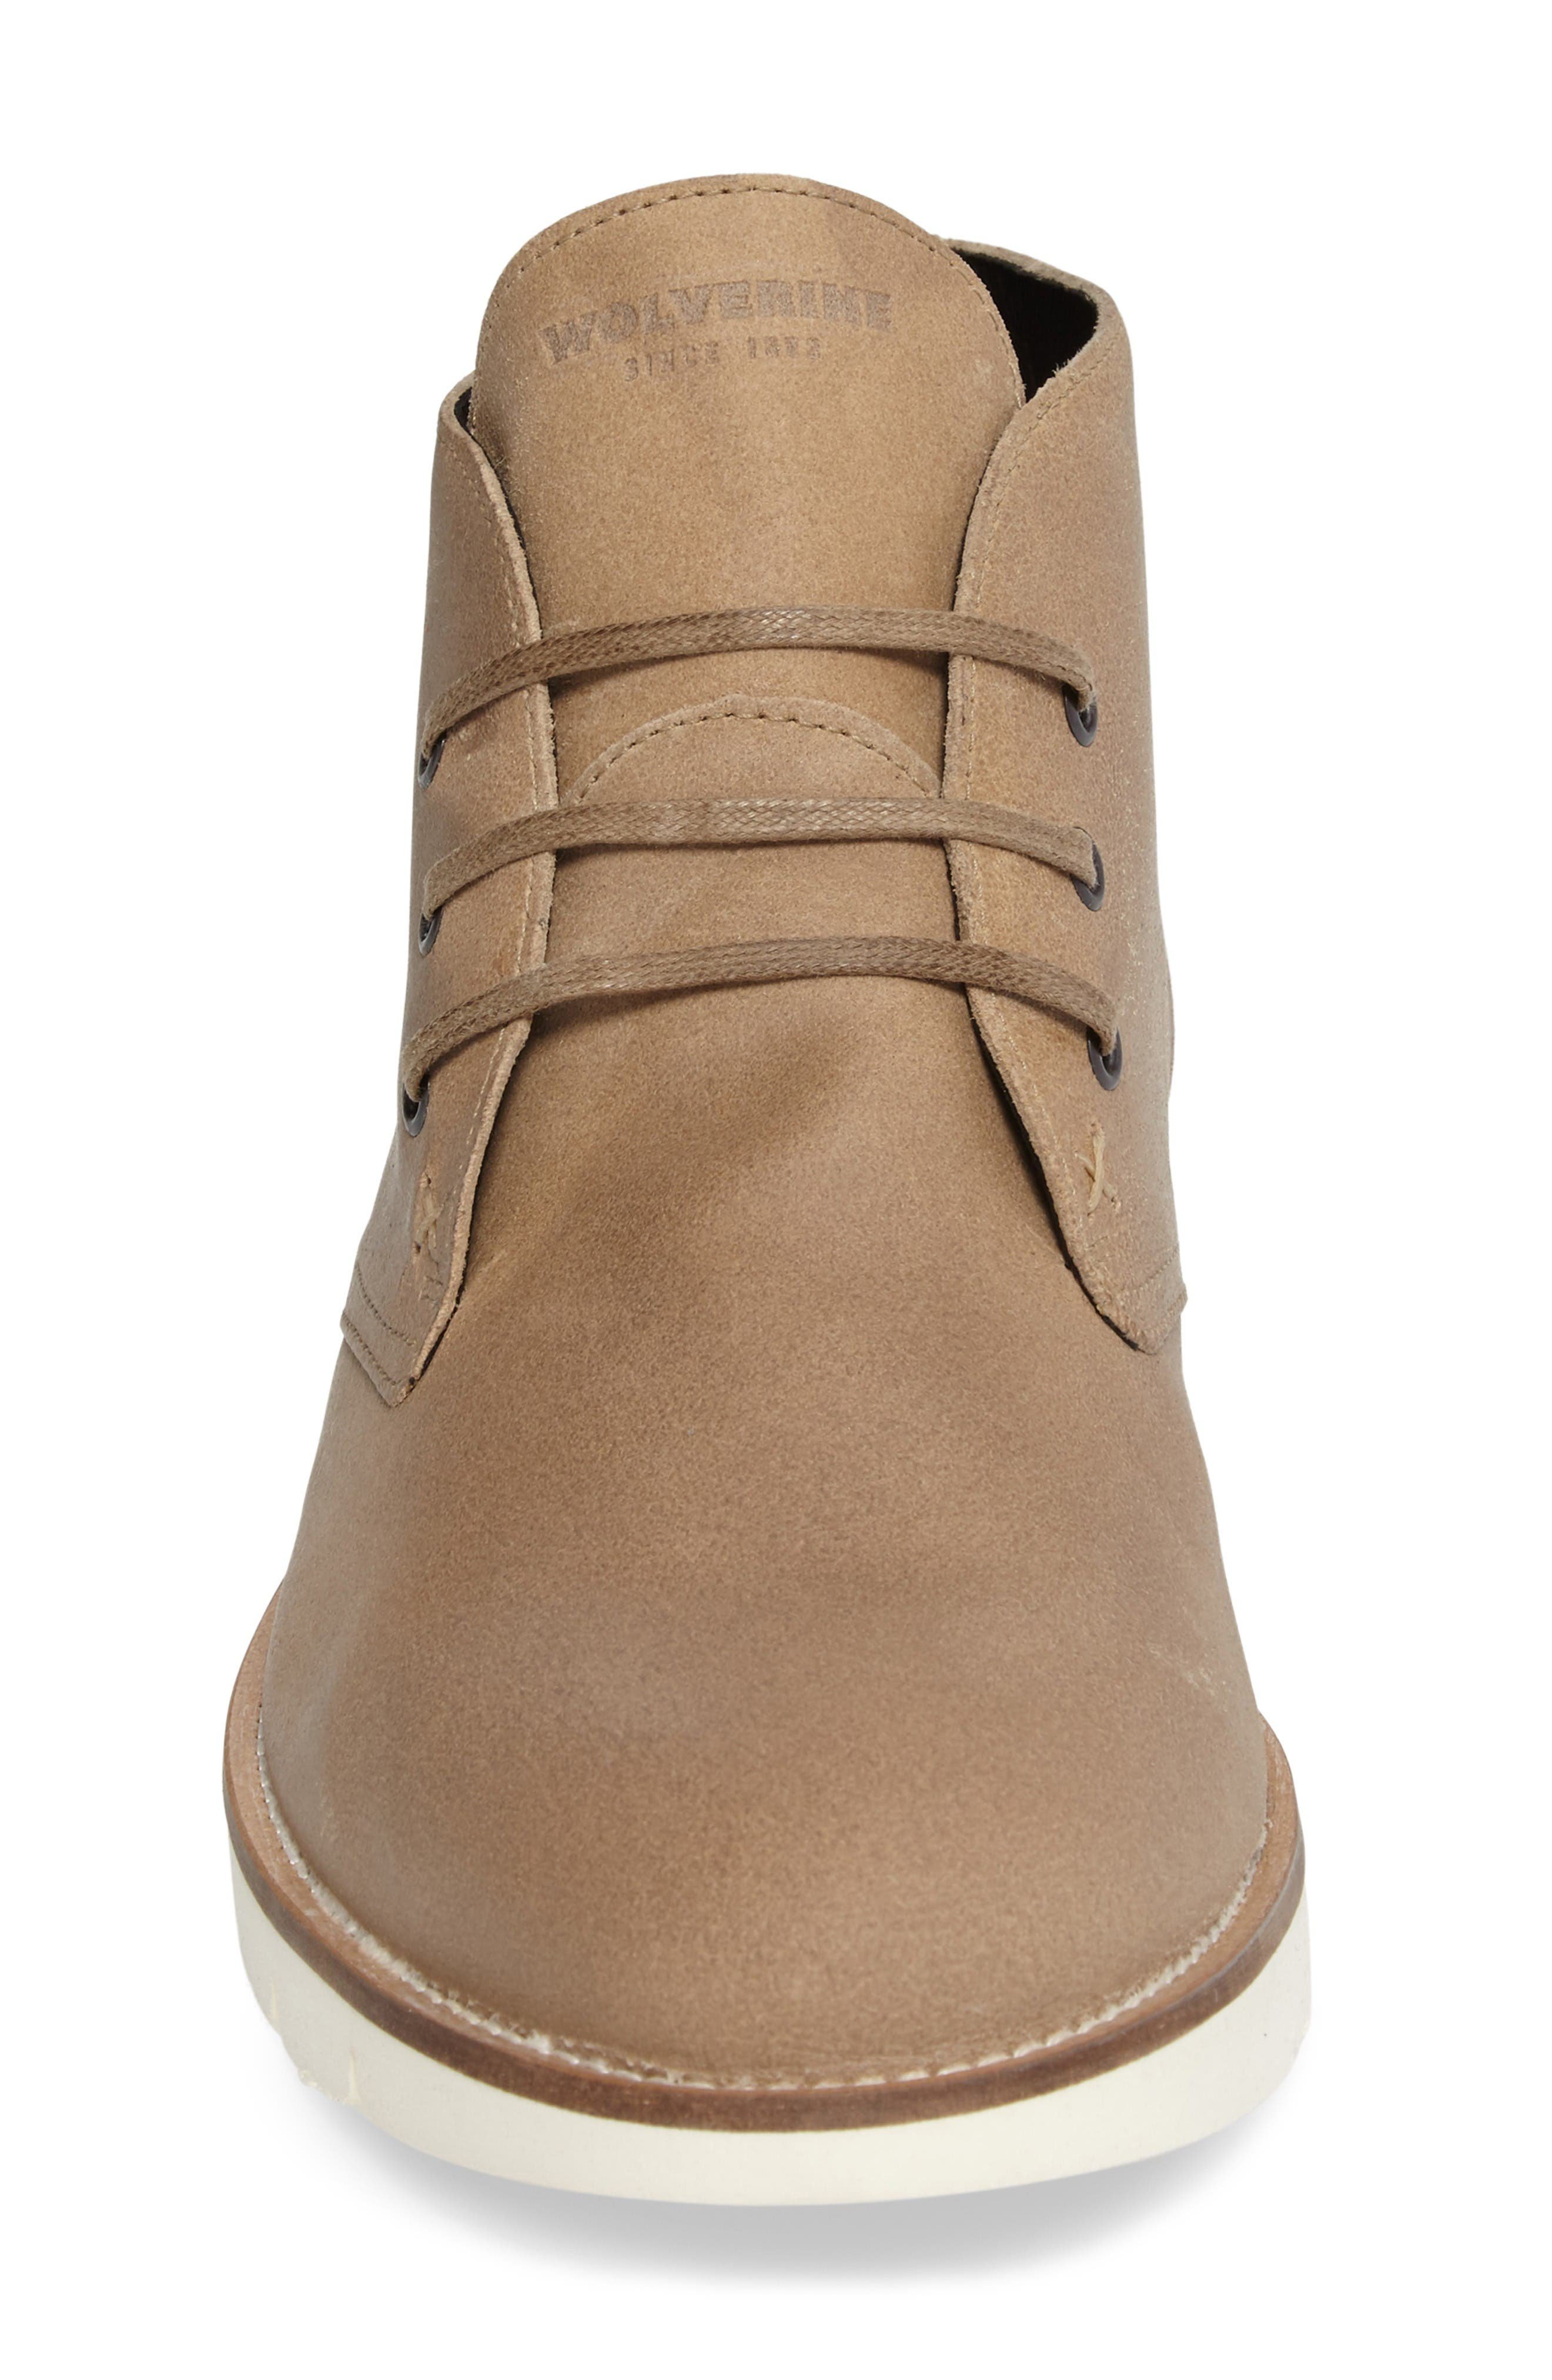 Gibson Chukka Boot,                             Alternate thumbnail 4, color,                             Stone Suede